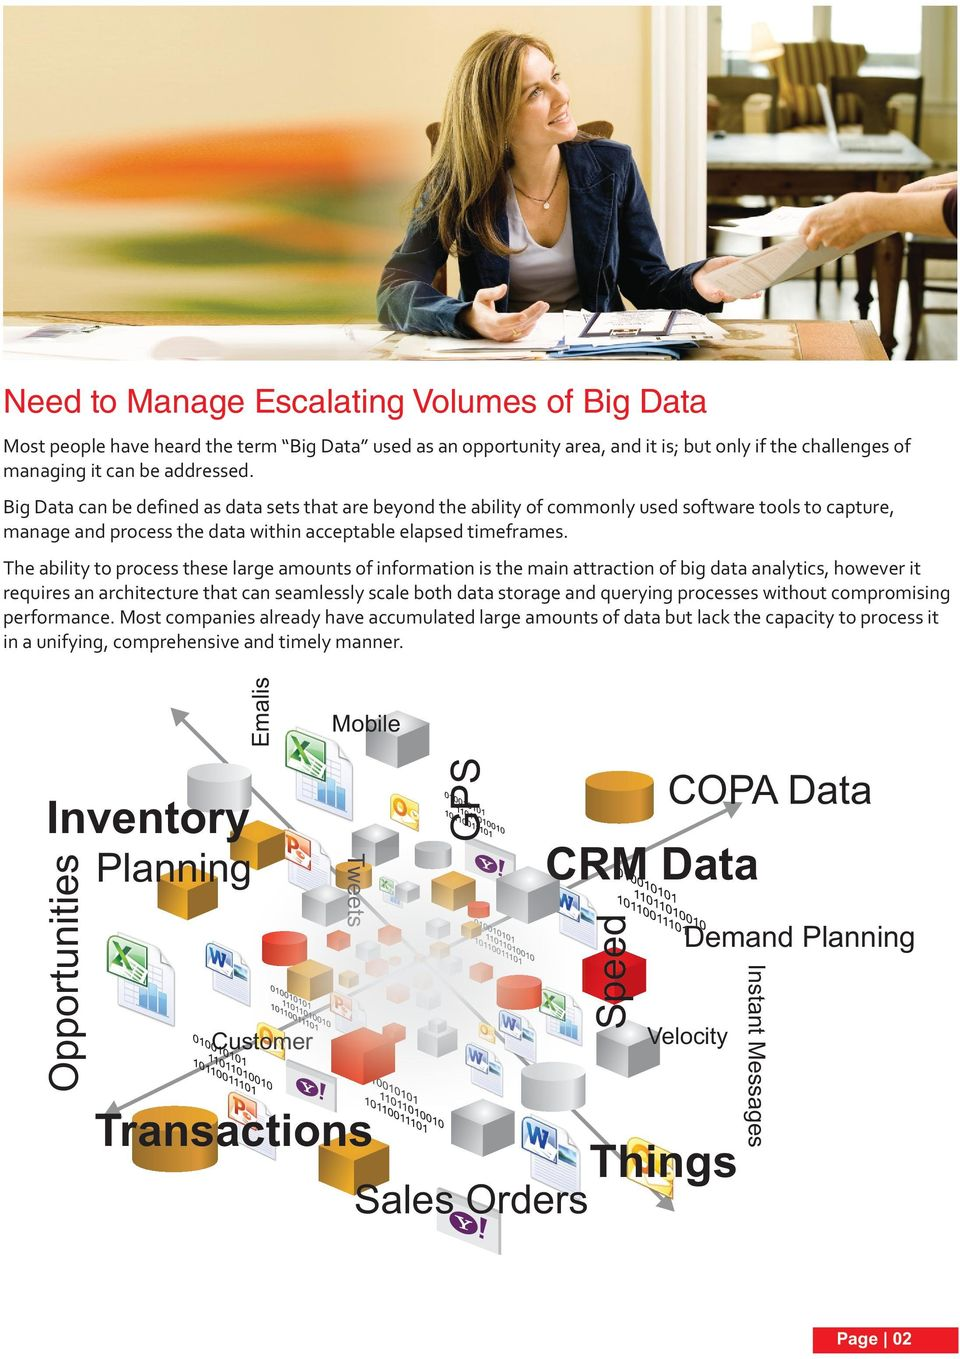 Mobile GPS Planning Tweets CRM Data Customer Transactions Sales Orders Demand Planning Velocity Things Instant Messages Opportunities Inventory COPA Data Speed Emalis The ability to process these